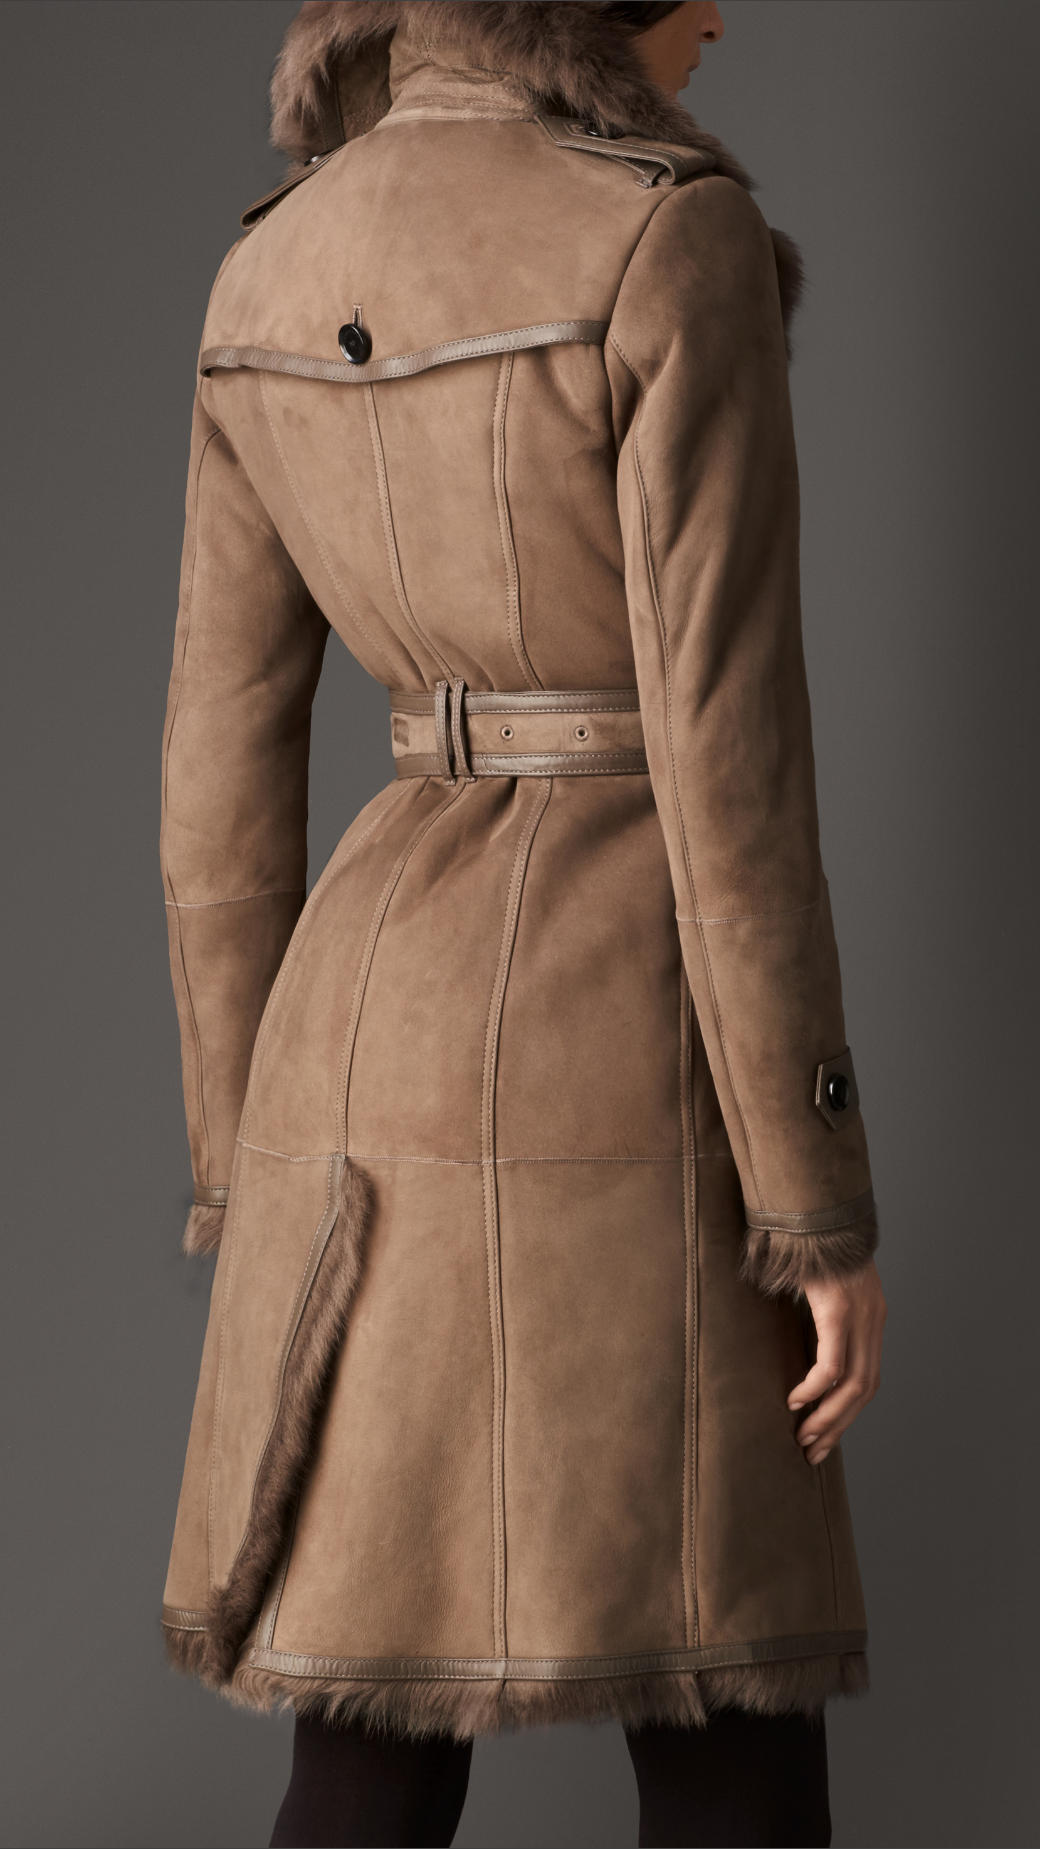 Burberry Long Shearling Trench Coat in Brown